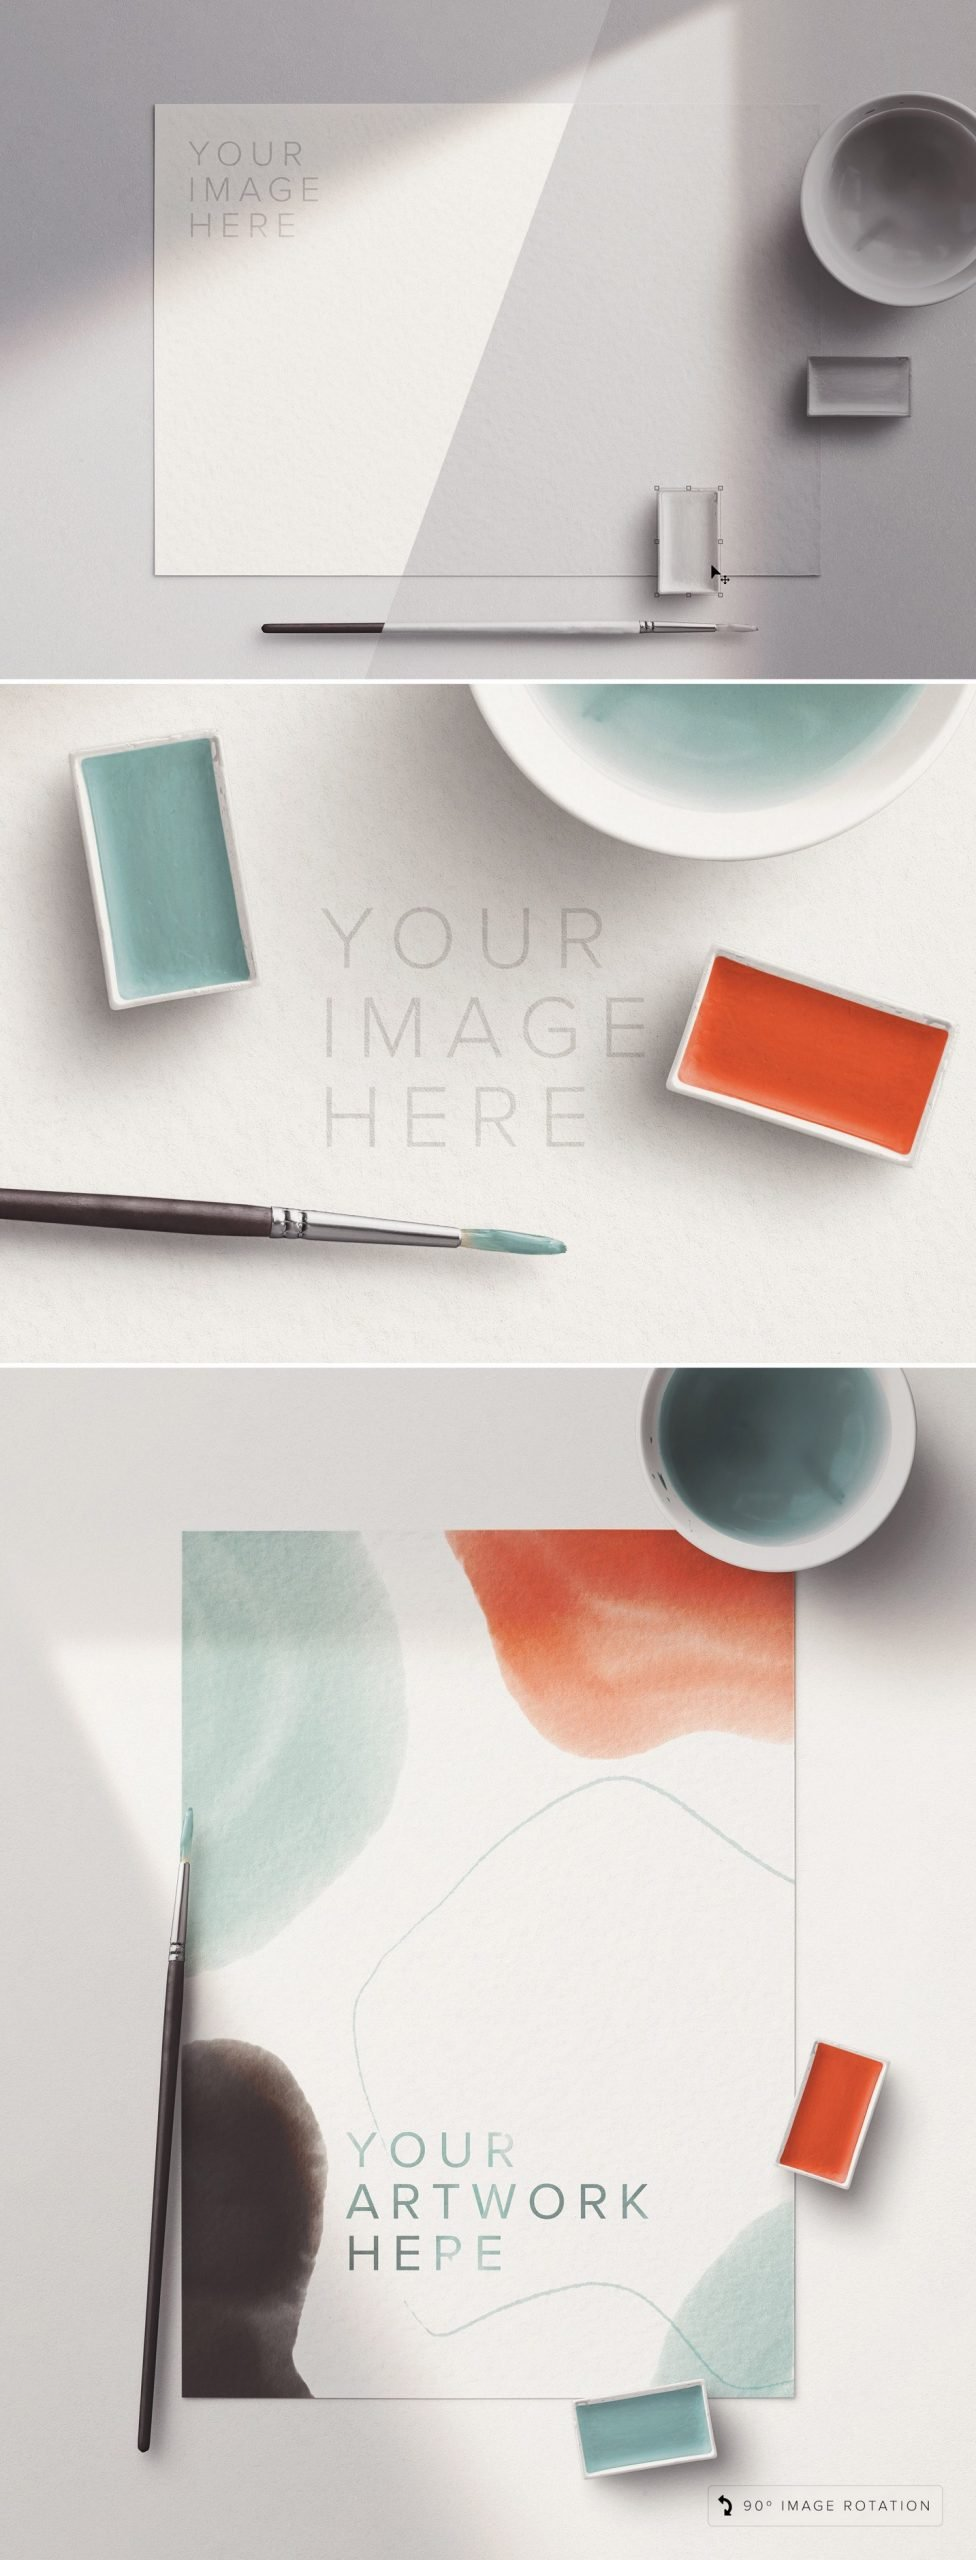 artist watercolor custom scene mockup preview1 1 scaled